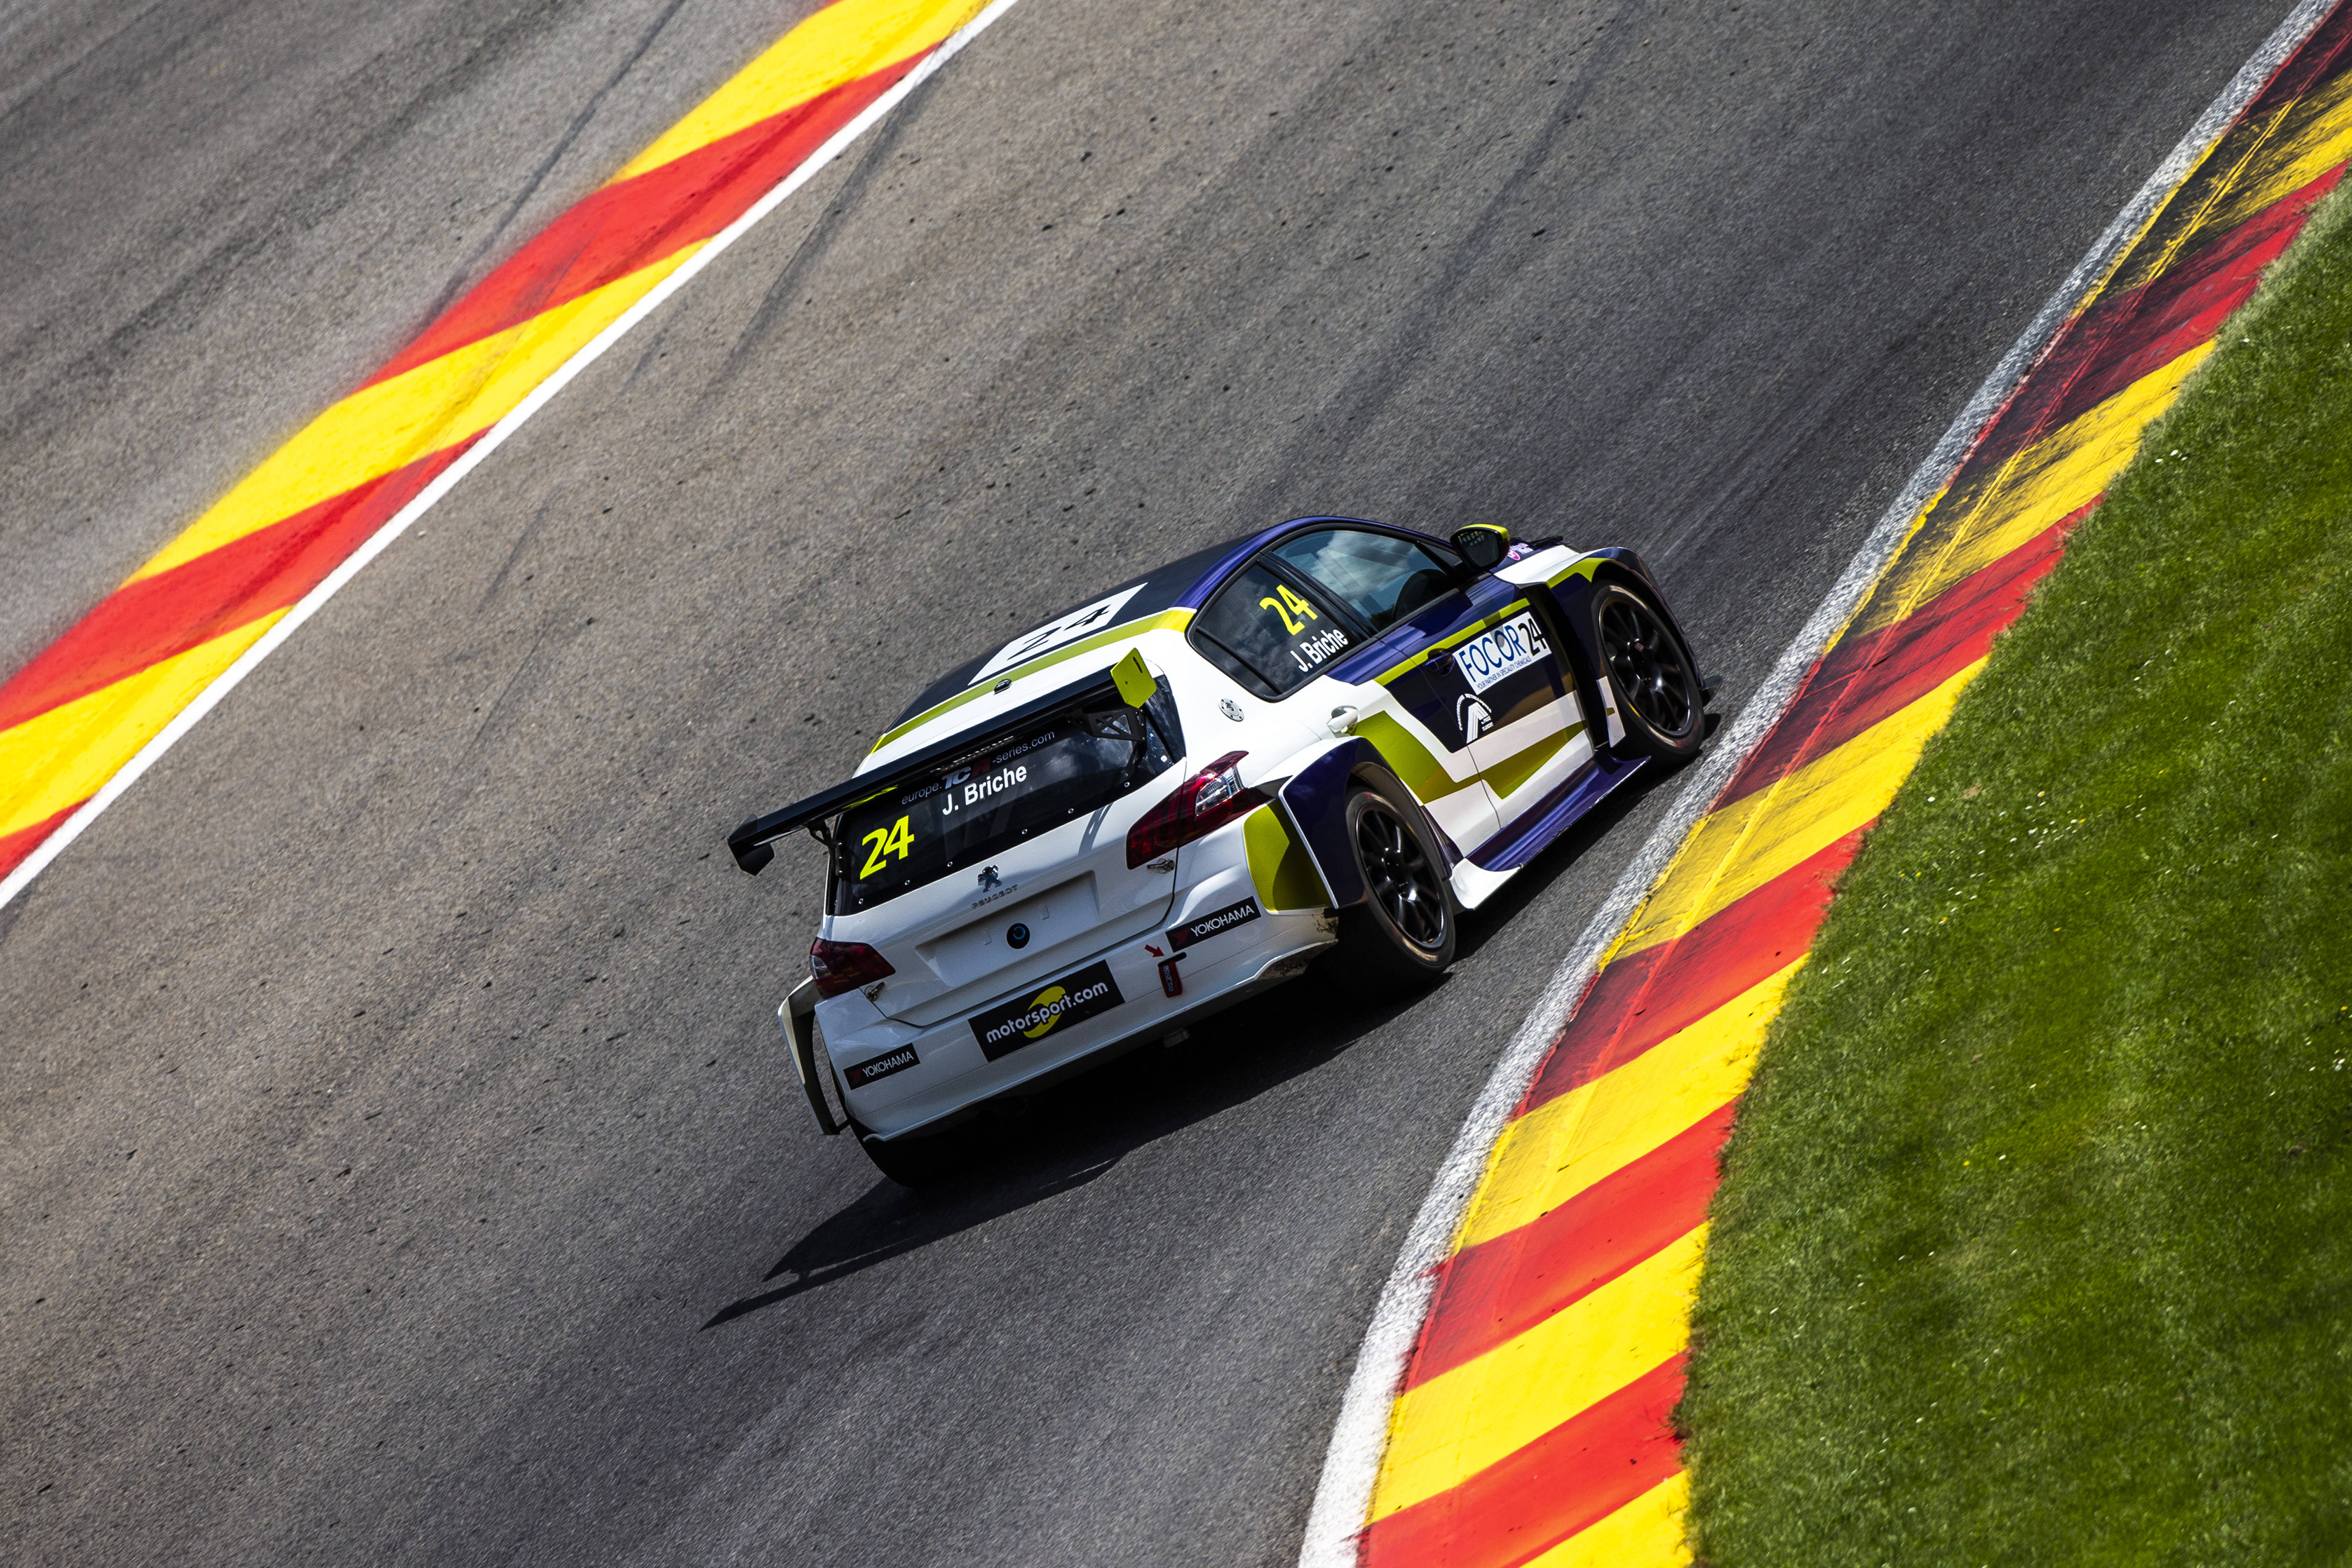 2019-2019_spa-francorchamps_friday---2019_eur_spa_fp2_24_julien_briche_1.jpg